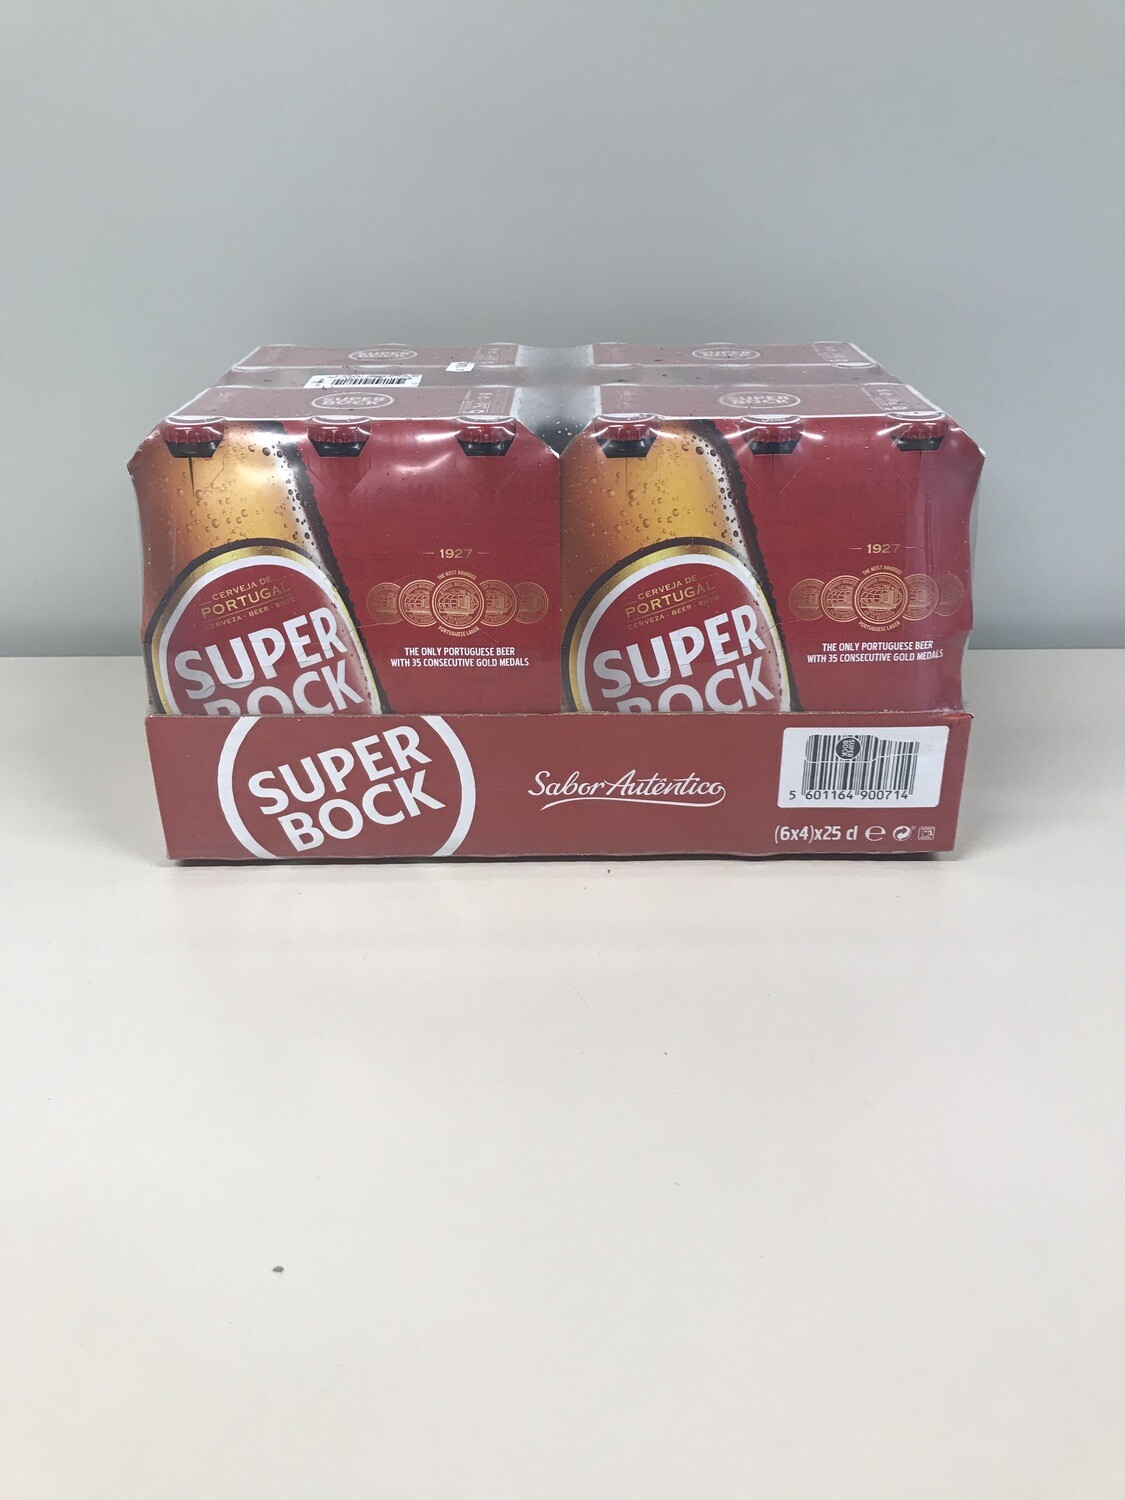 biere blonde super bock 24 X 25 cl VP 5.2%